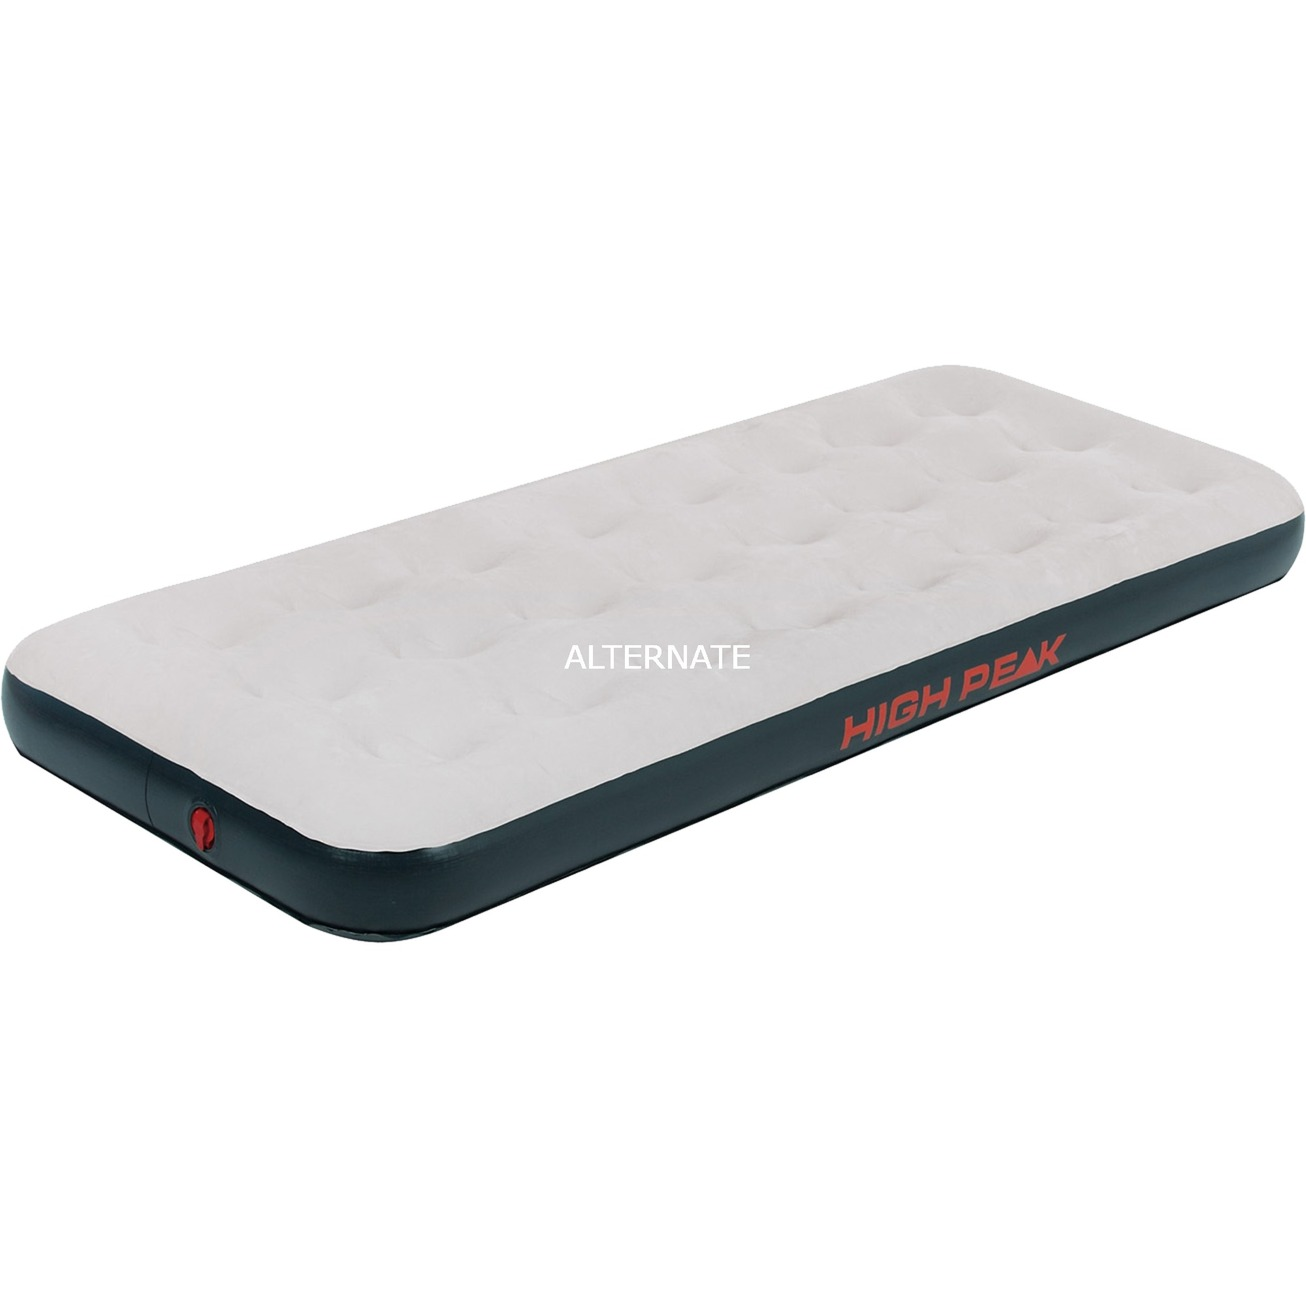 Image of Air bed Single 40032, Camping-Luftbett